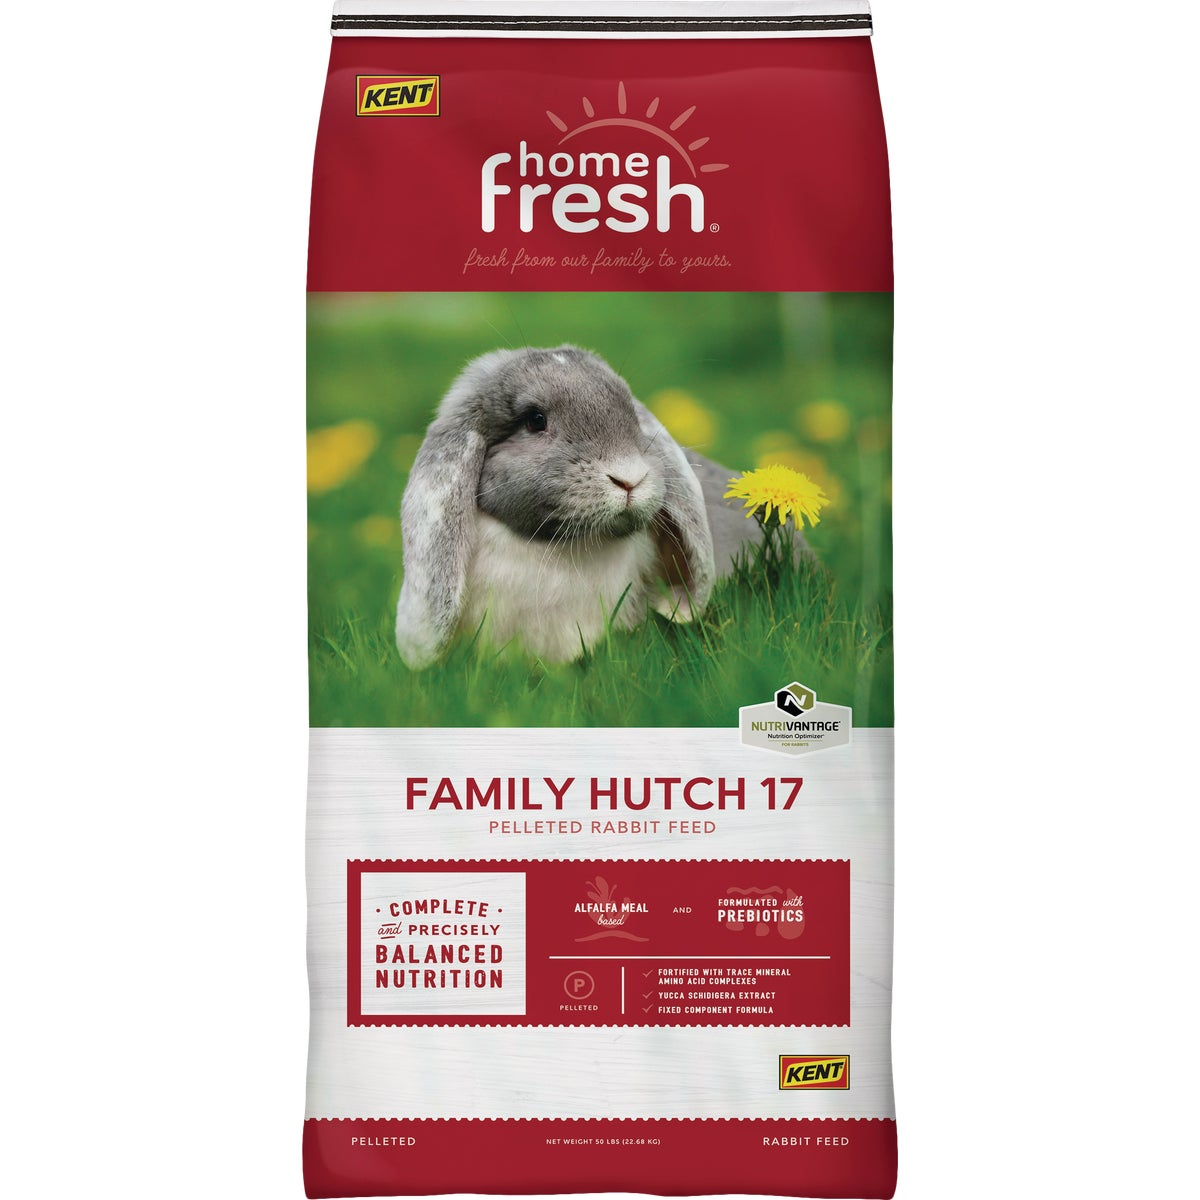 25LB TOPSHOW RABBIT FEED - 7562 by Kent Feeds Inc